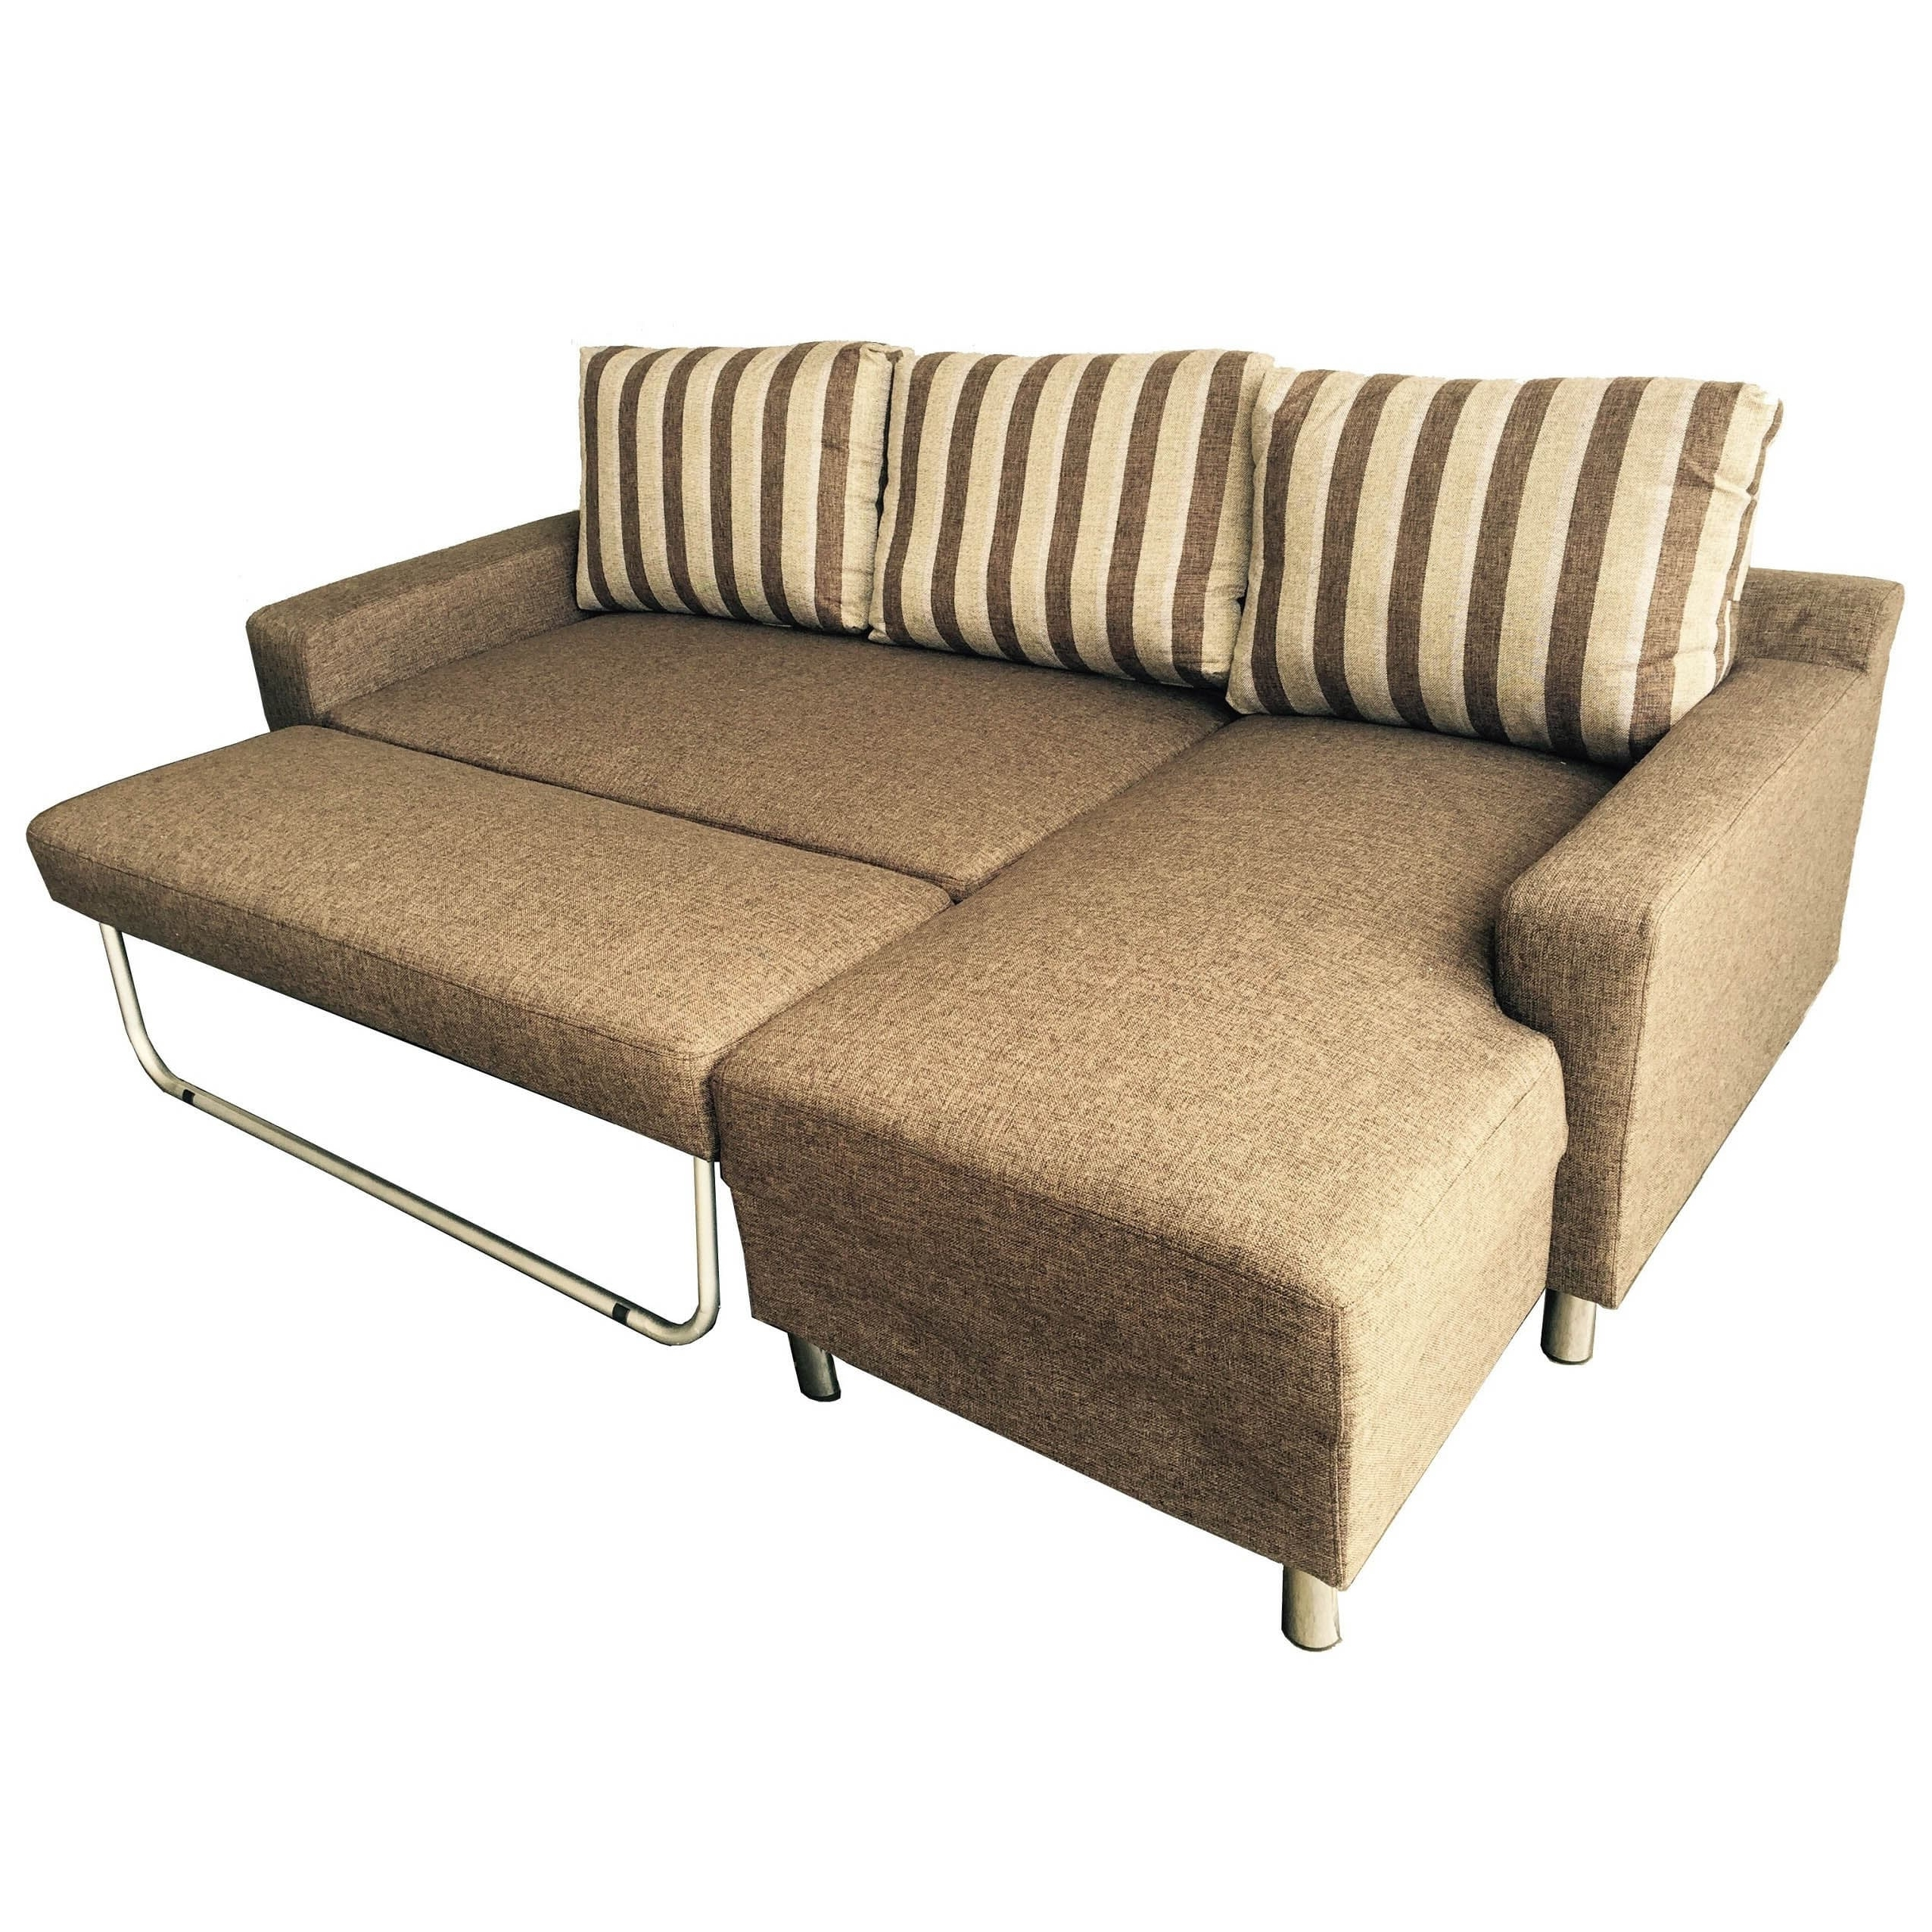 Fashionable Kachy Fabric Convertible Sectional Sofa Bed – Free Shipping Today Intended For Convertible Sectional Sofas (View 13 of 20)